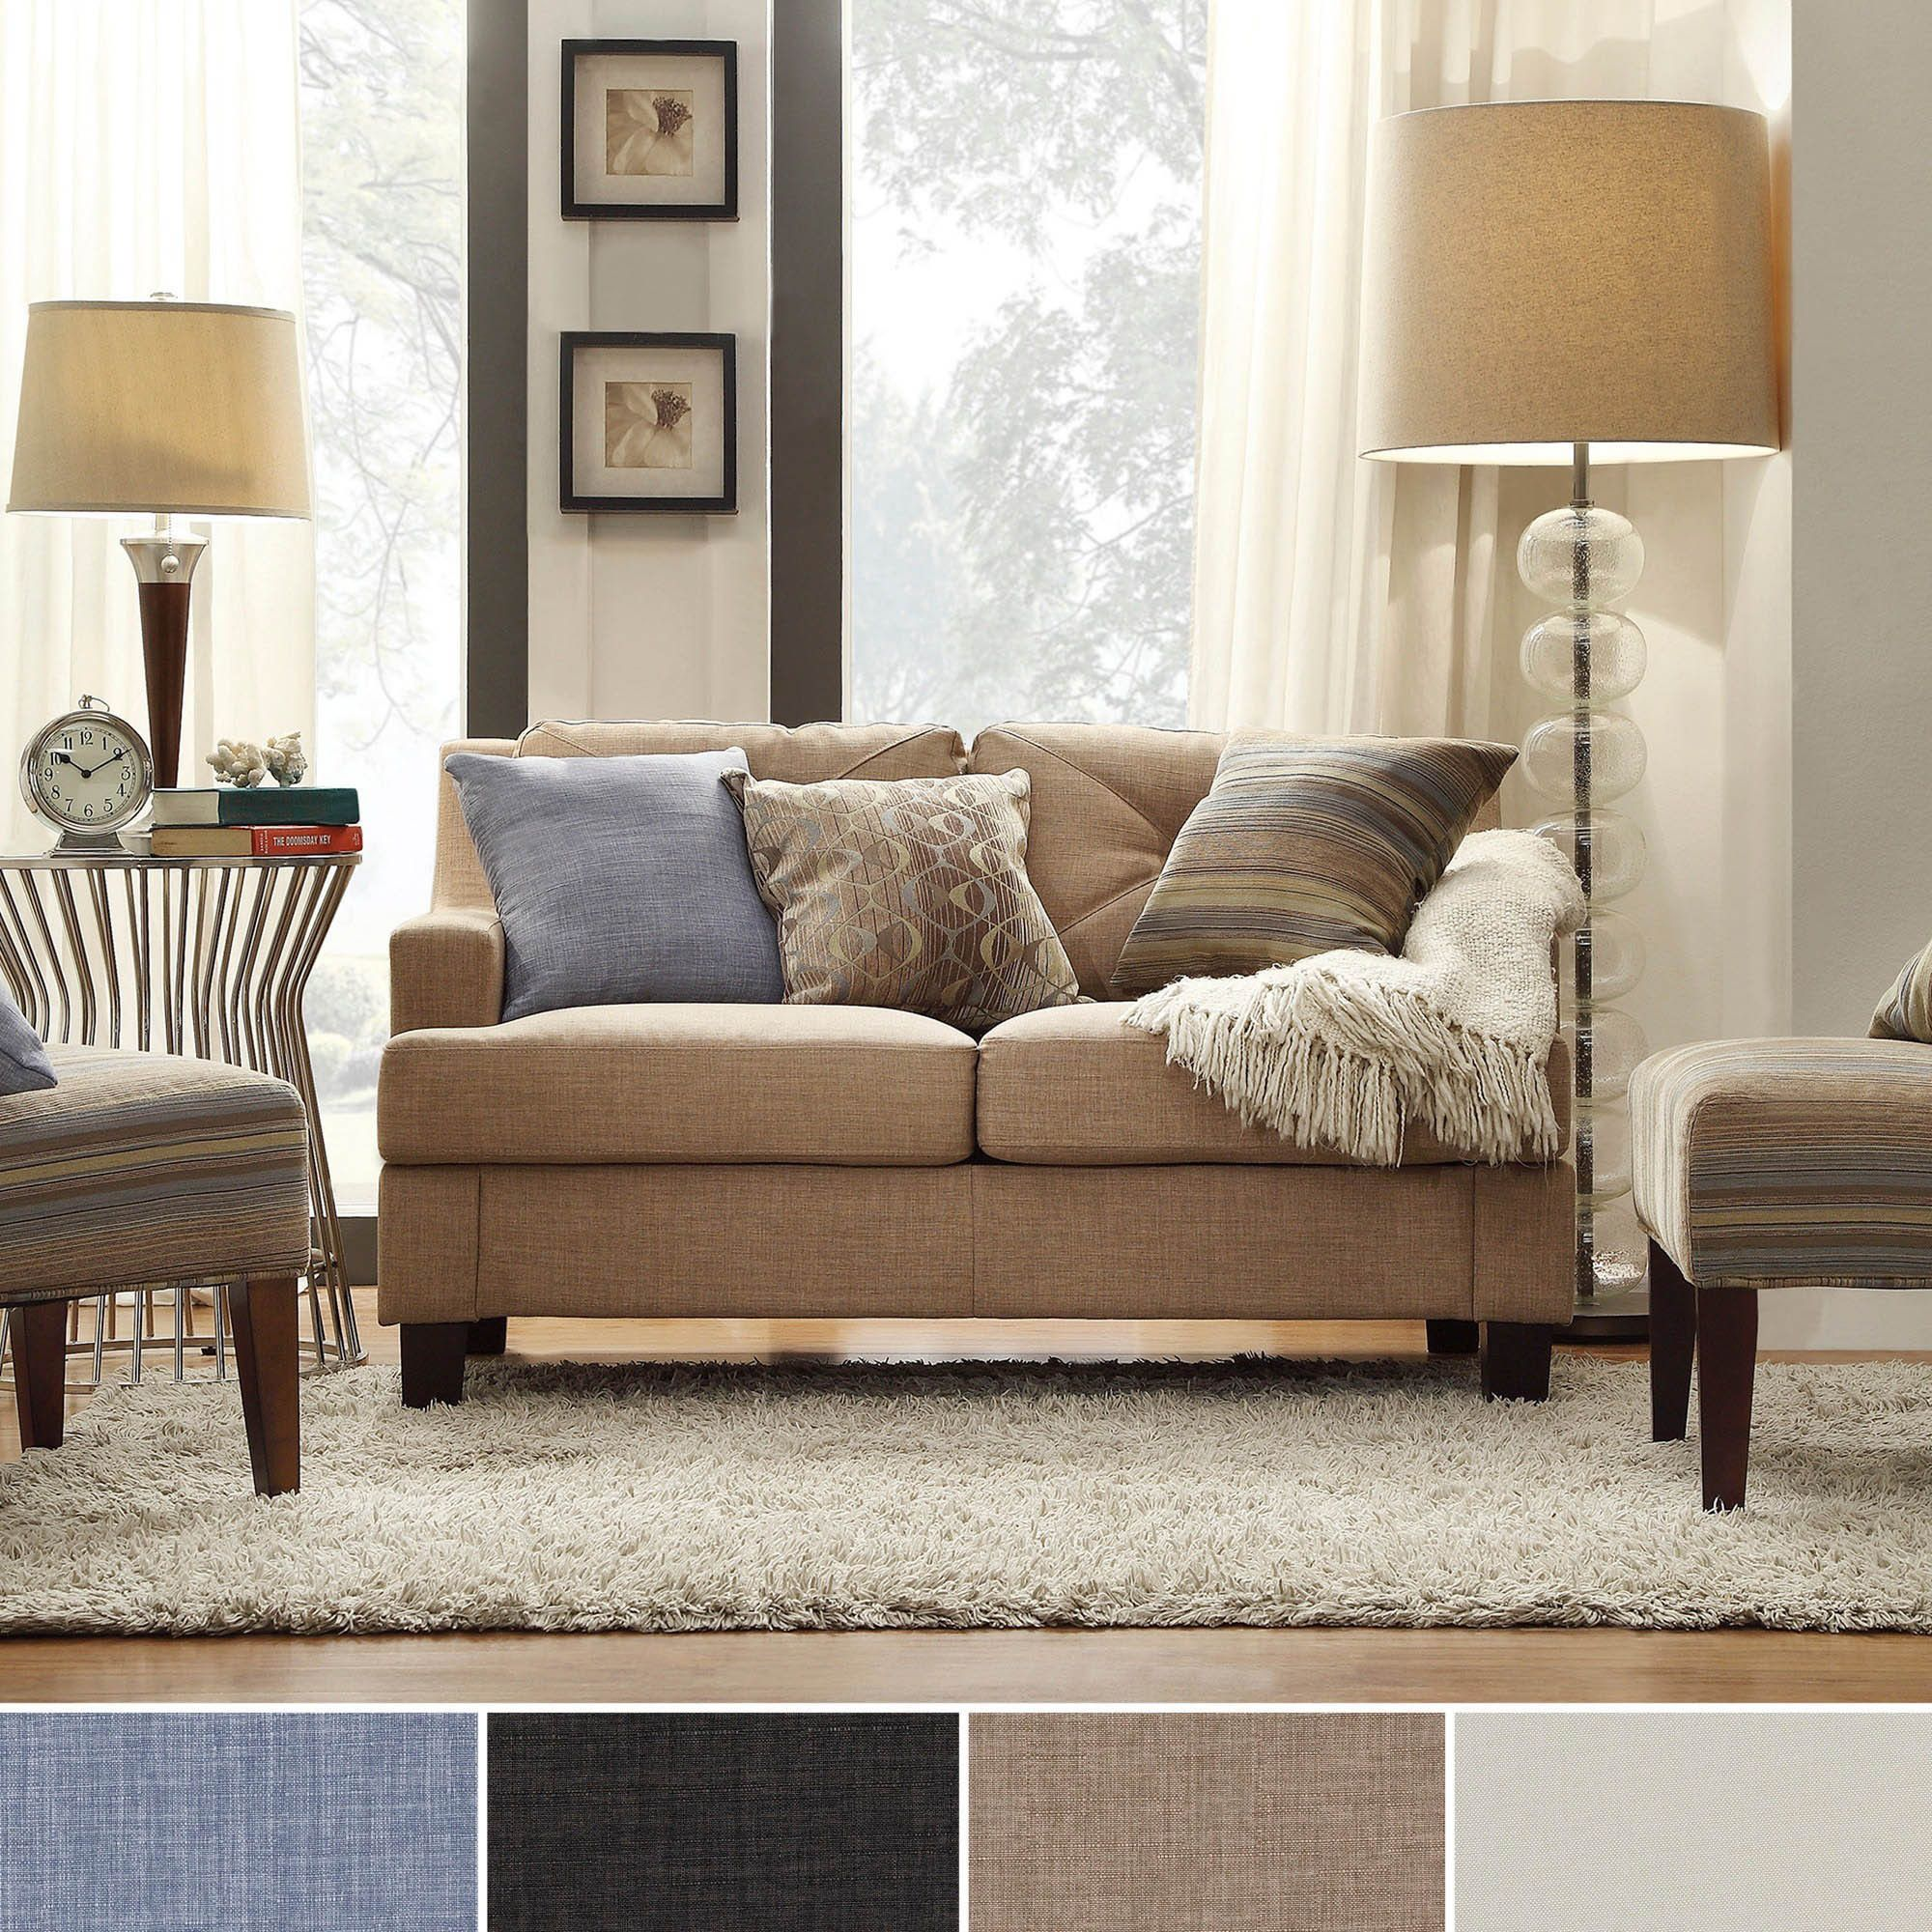 Elston Linen Sloped Track Loveseat iNSPIRE Q Modern by iNSPIRE Q.  Contemporary ArmchairContemporary StyleSeat ...